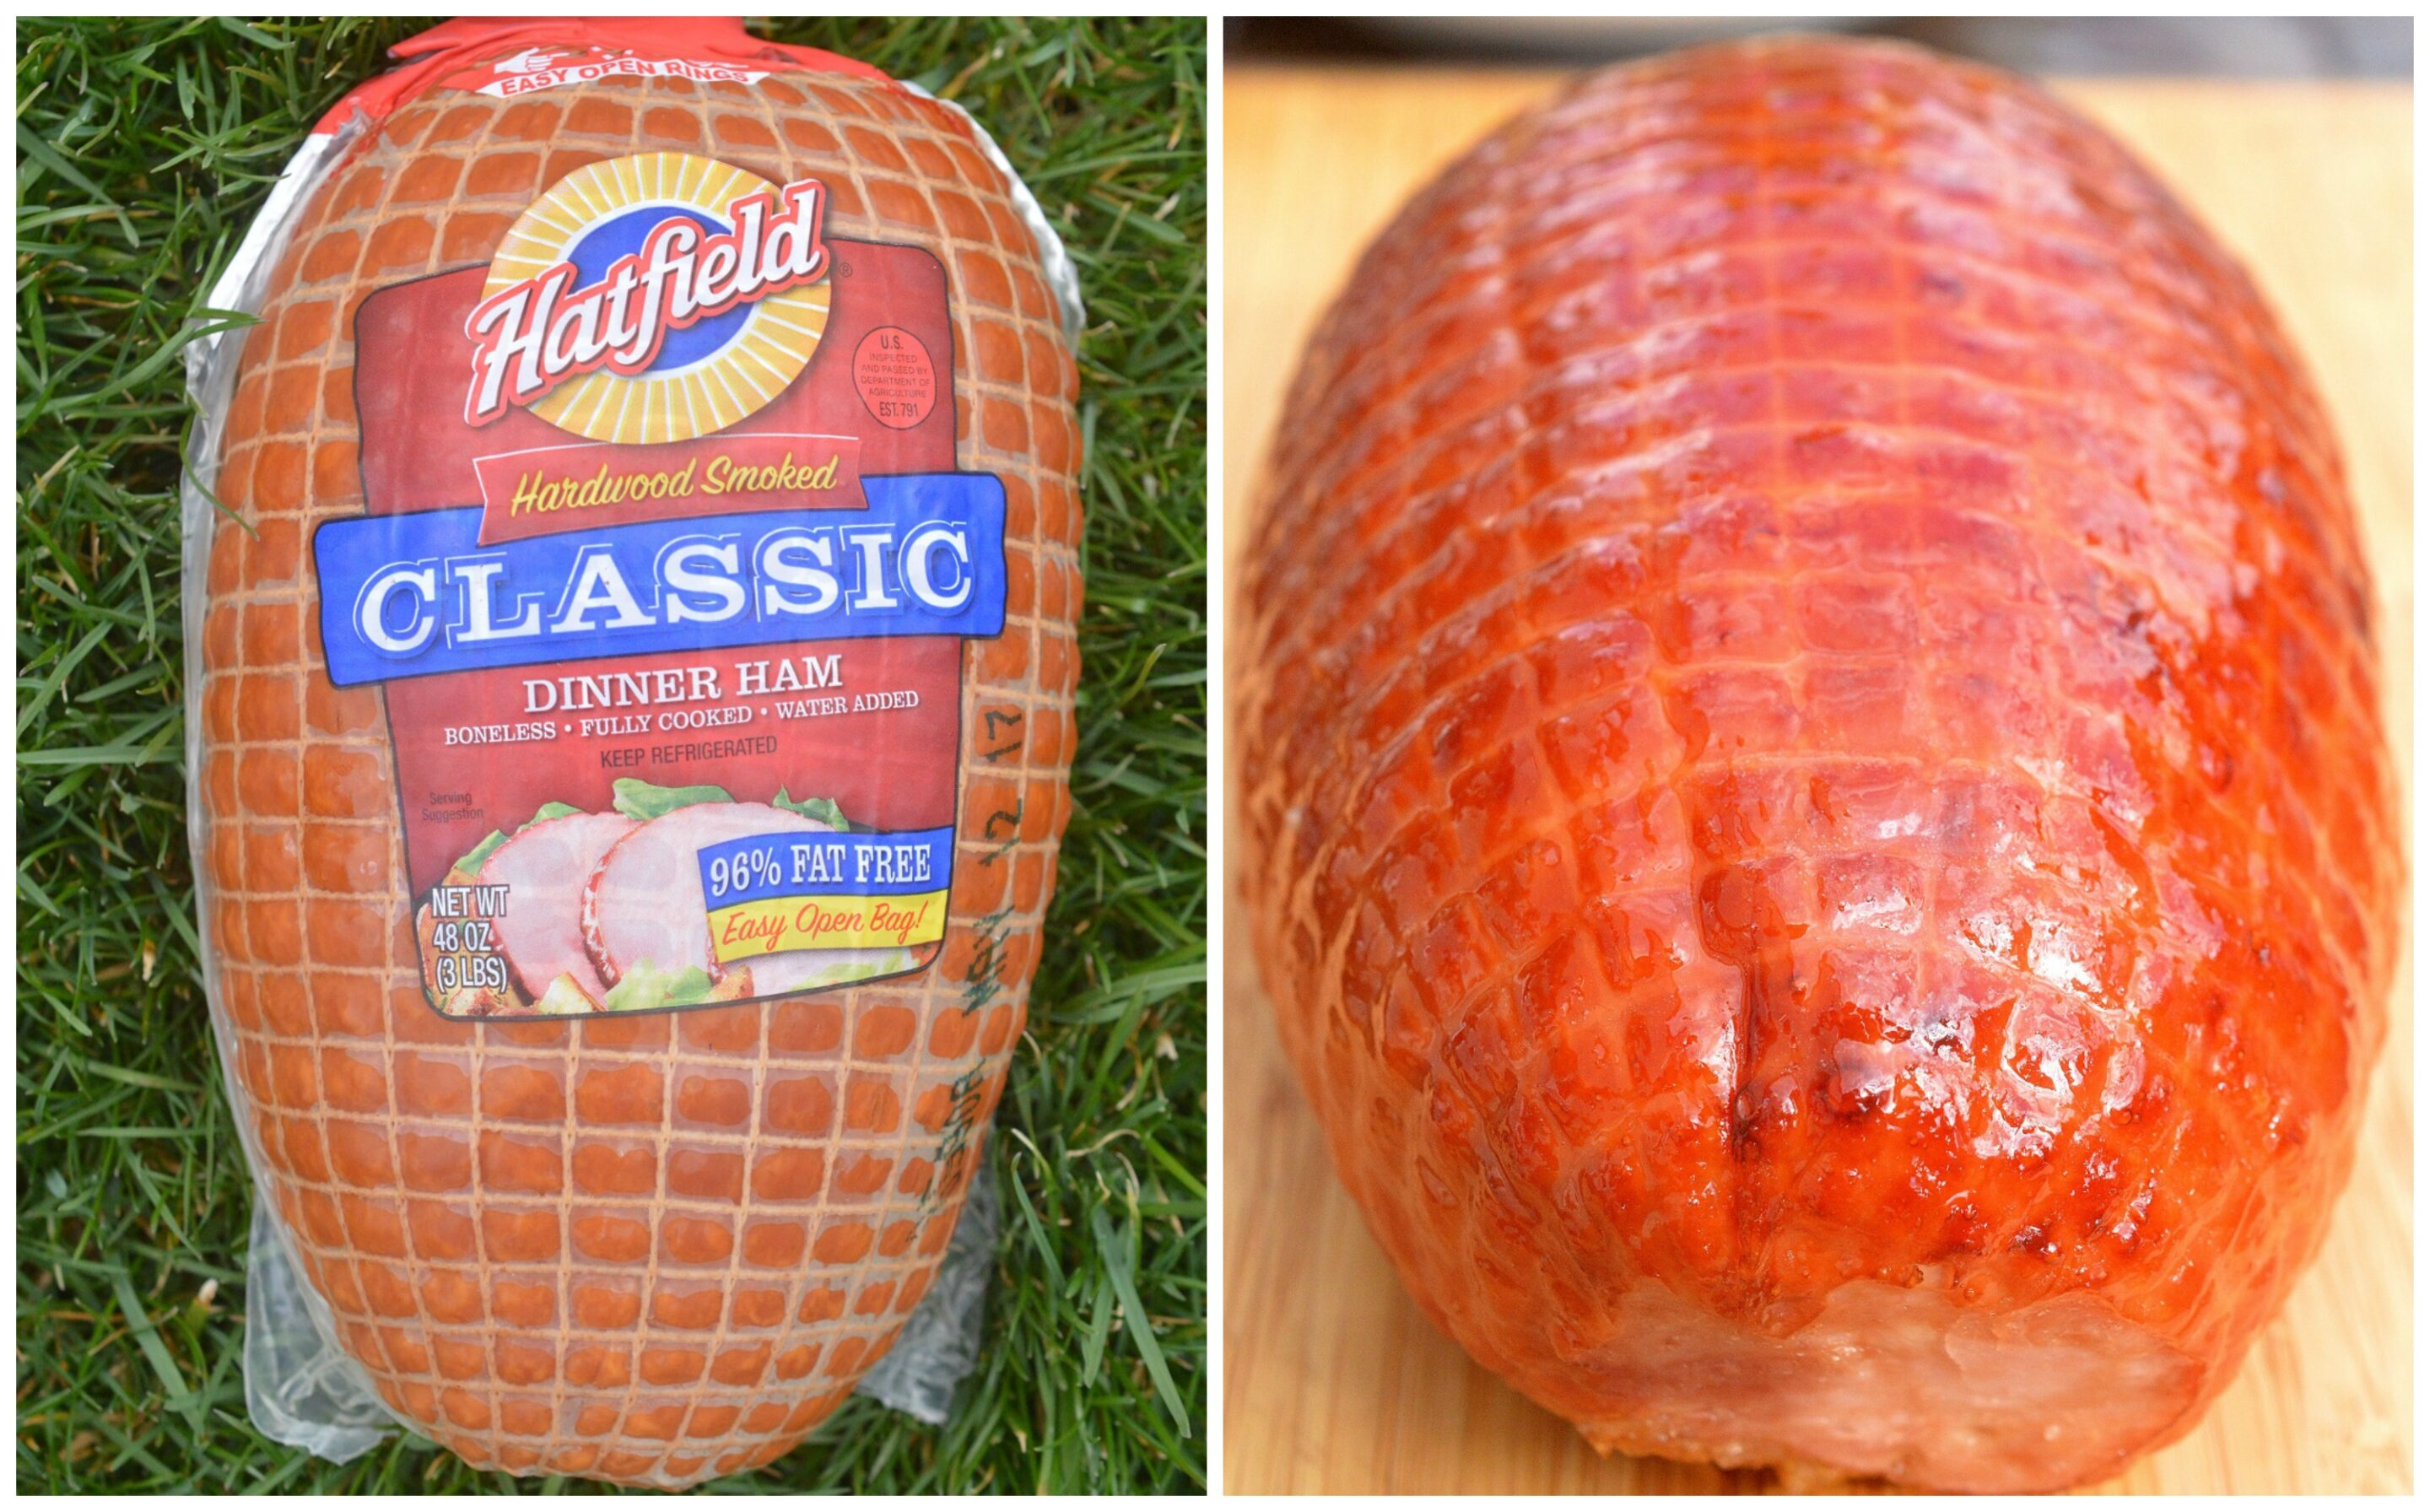 Hatfield Hardwood Smoked Boneless Dinner Ham